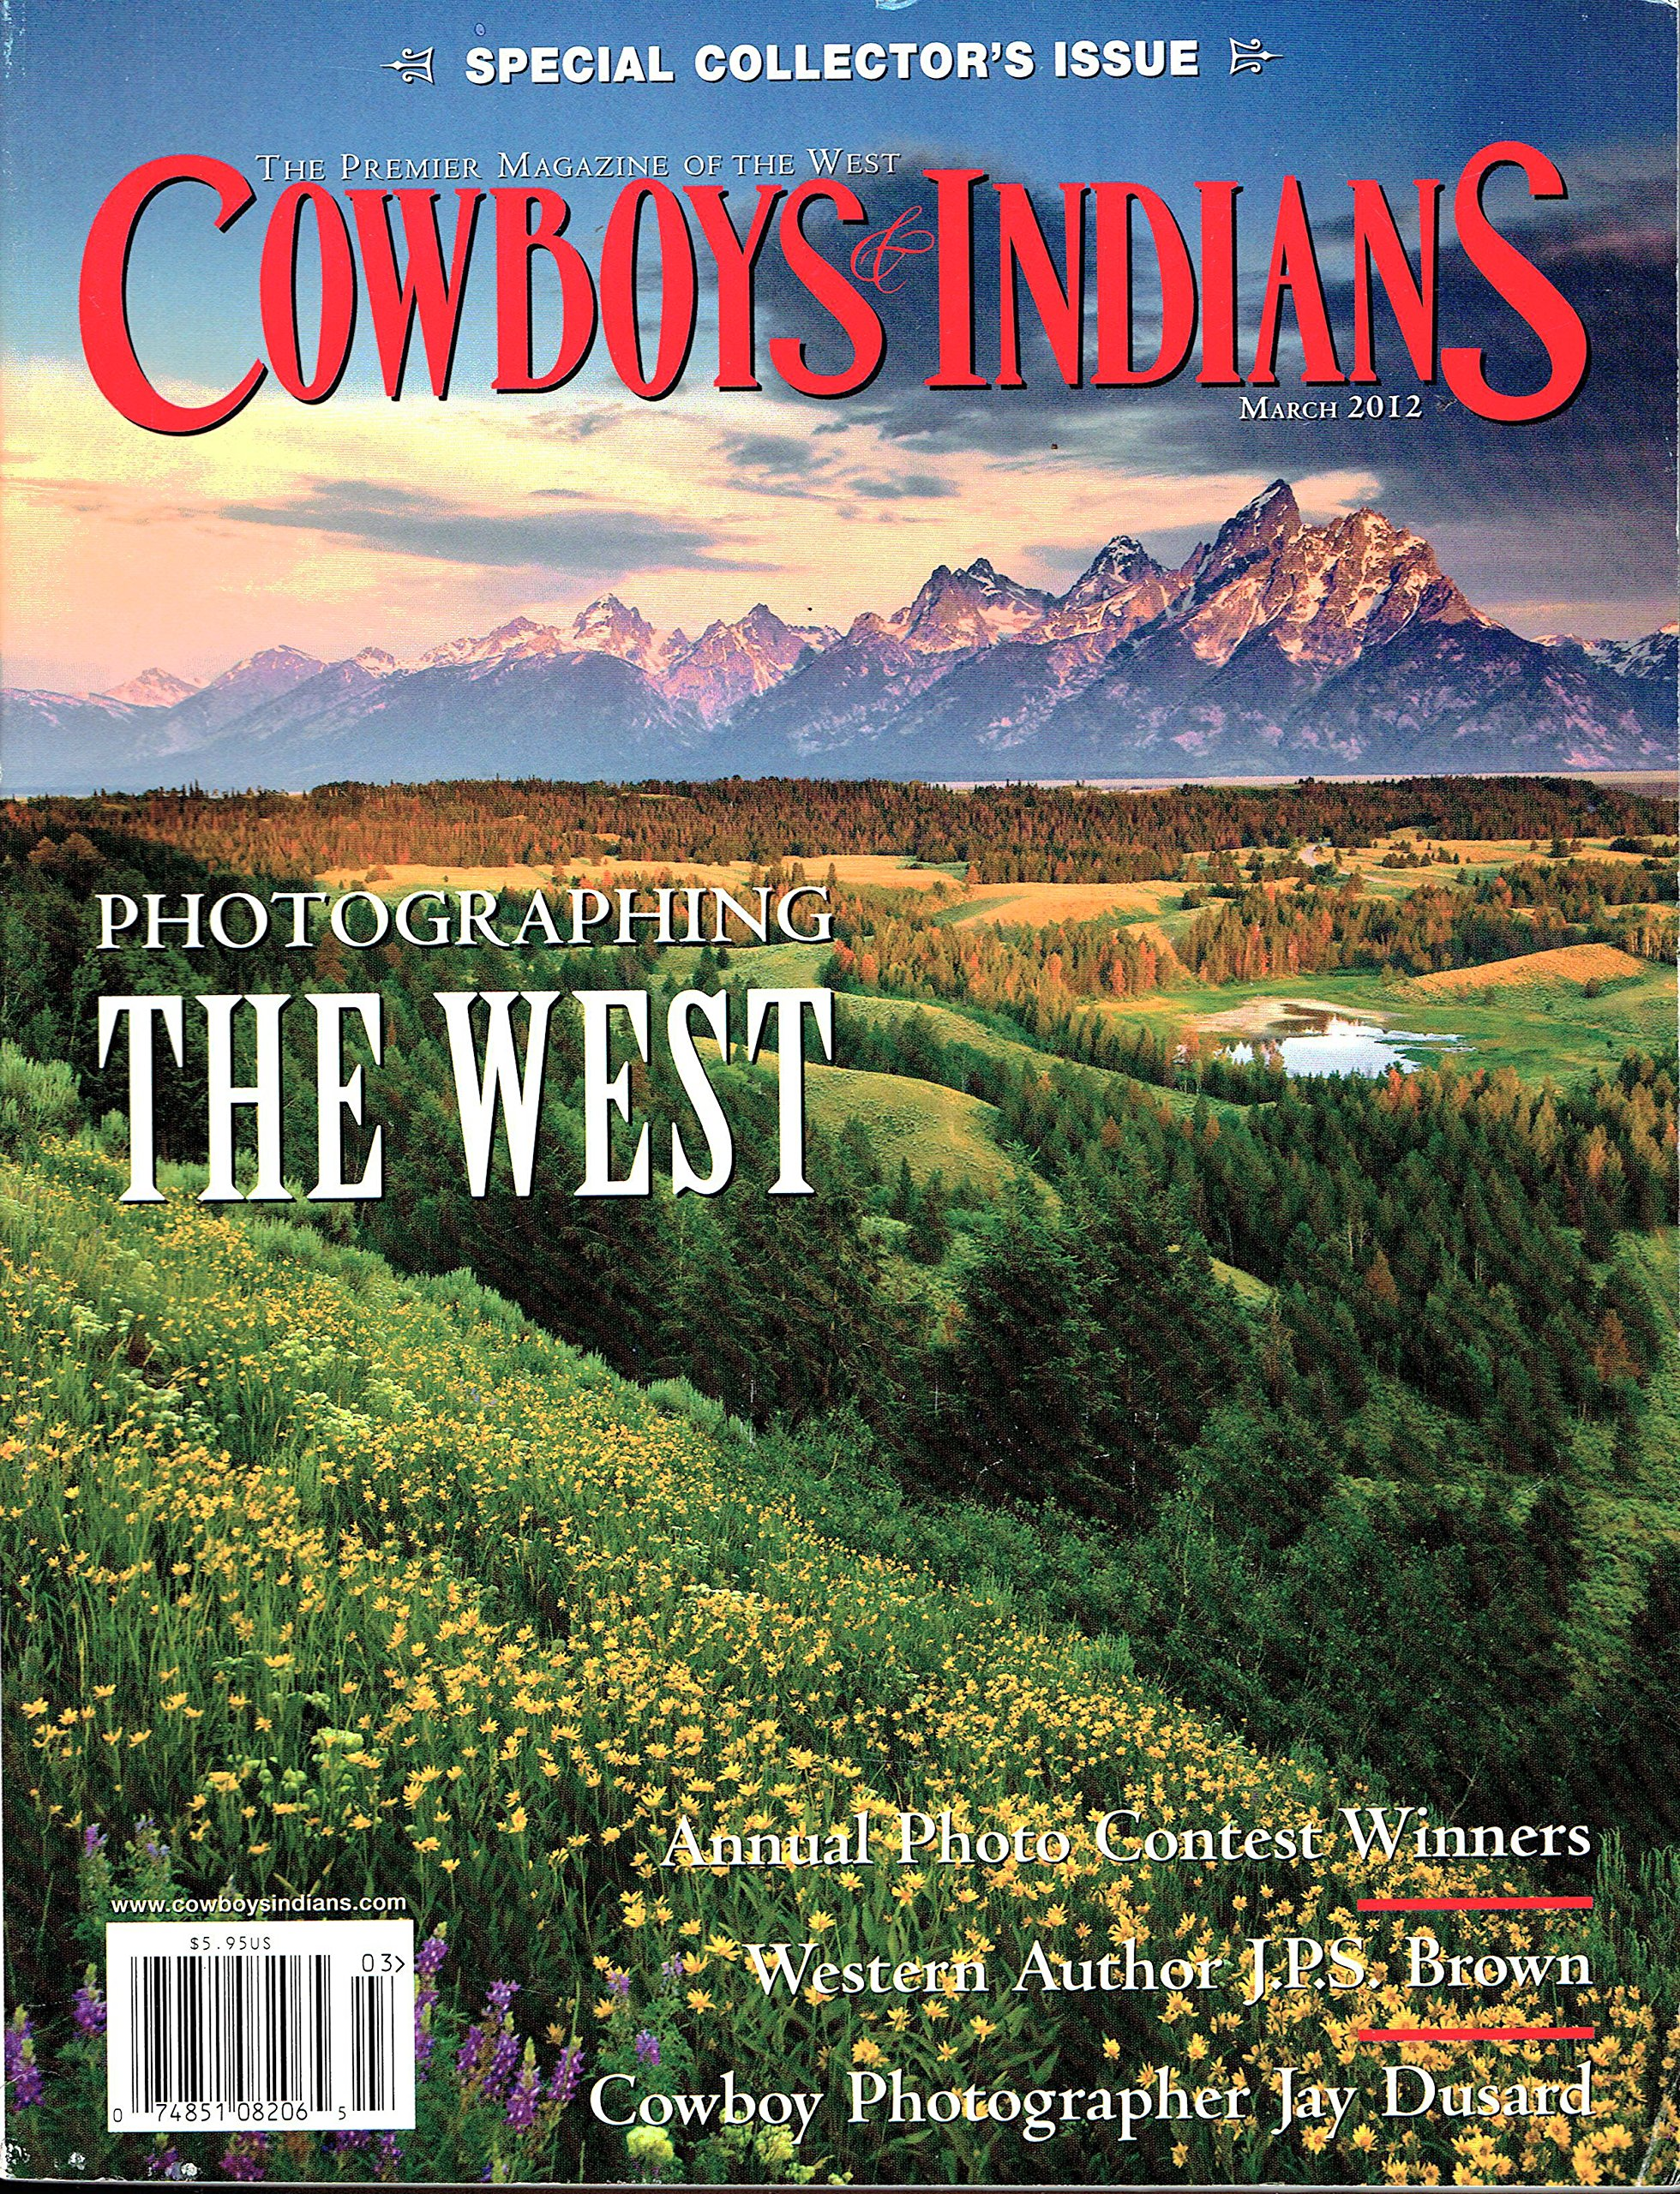 Cowboys & Indians March 2012 (Volume 20 # 2) ebook